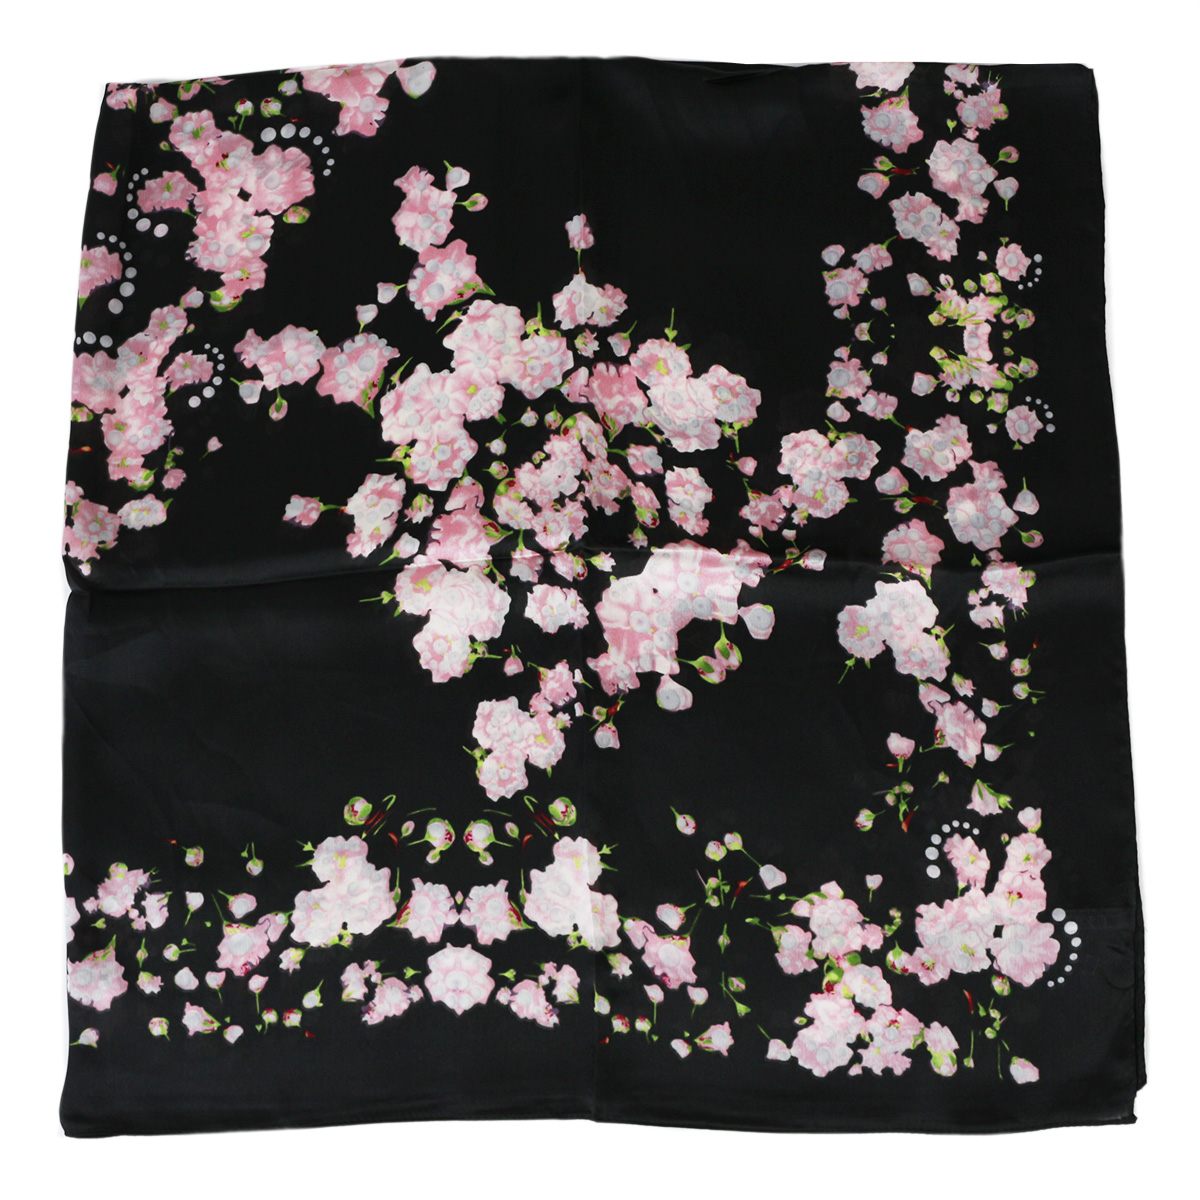 suqare 110cm scarf printing silk scarf flower retro large shawls wrapped head bandana elegant silk square plain hijab scarf in Women 39 s Scarves from Apparel Accessories